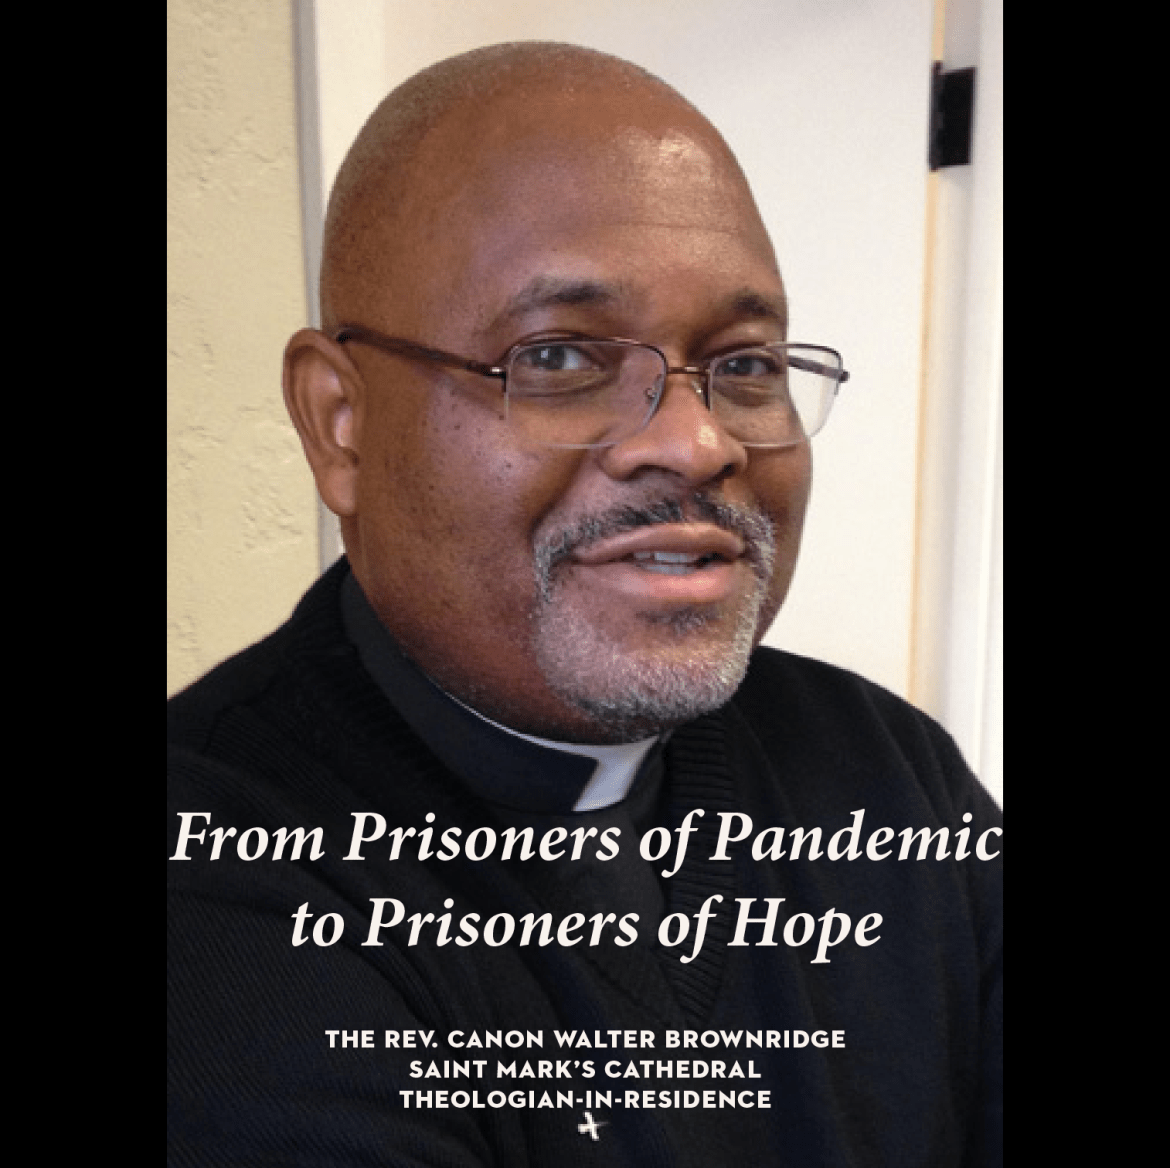 Canon Walter Brownridge presents: From Prisoners of Pandemic to Prisoners of Hope